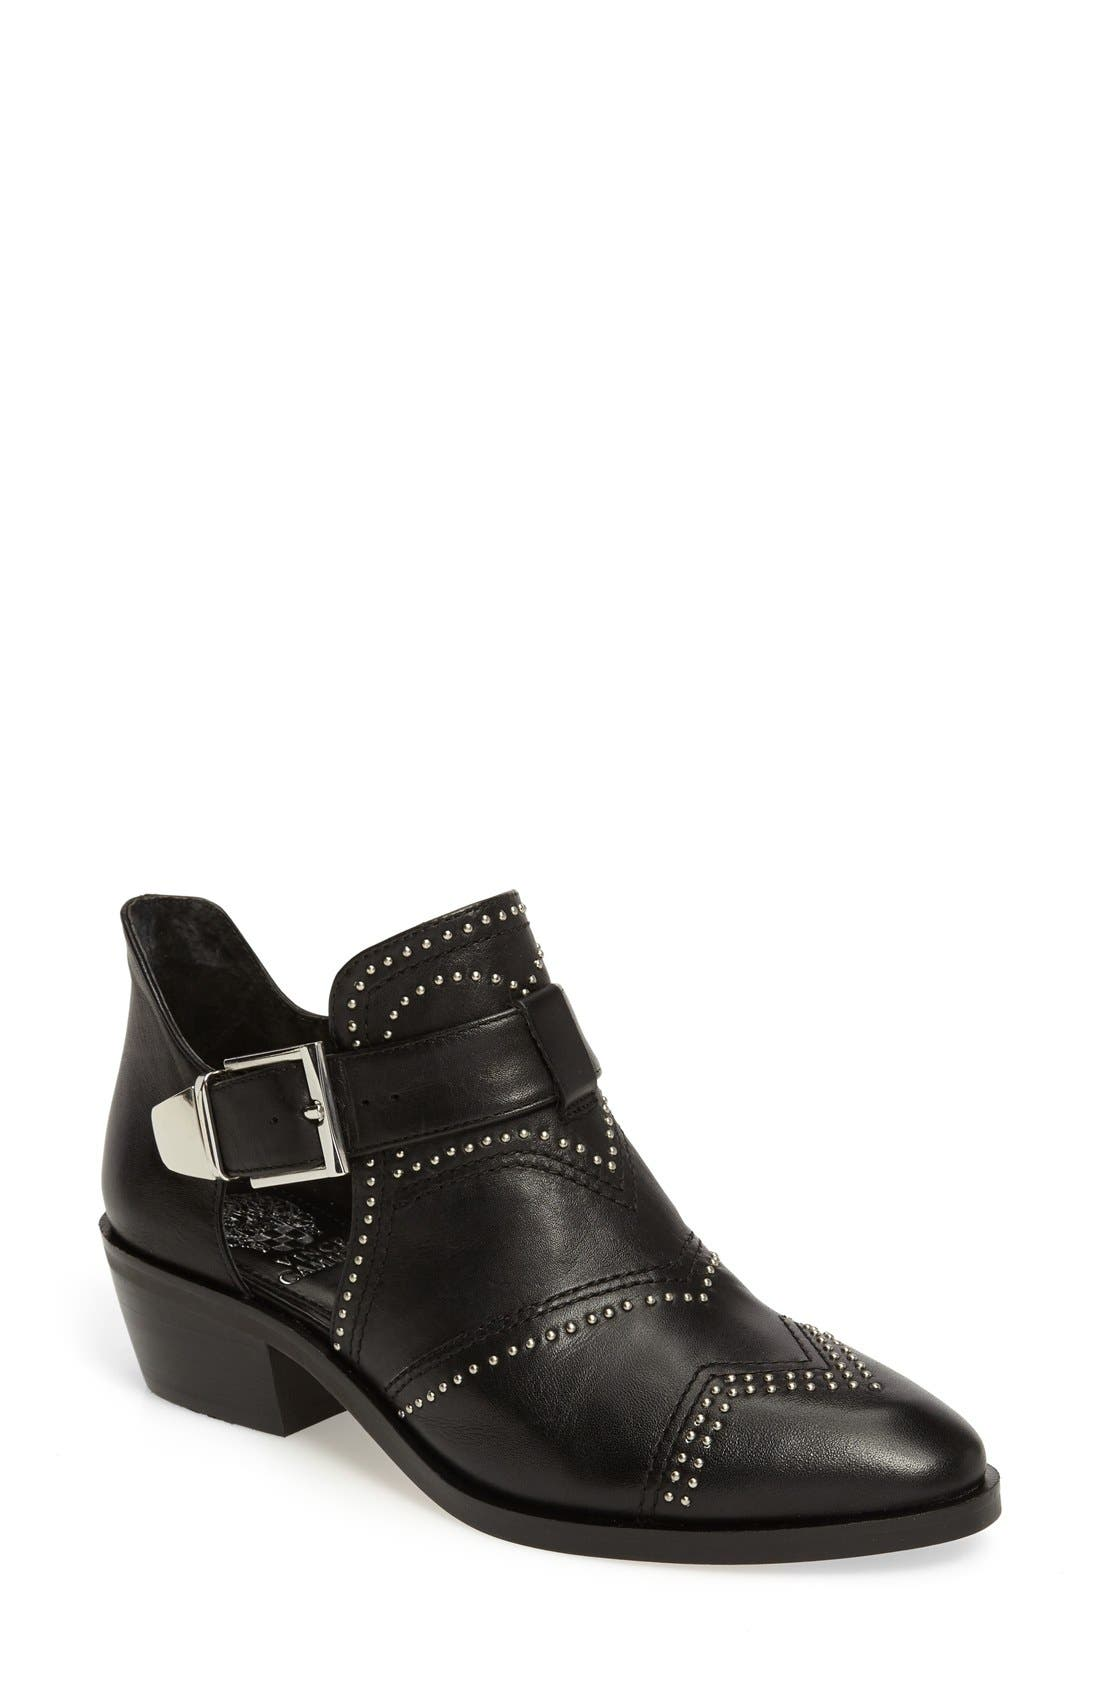 Alternate Image 1 Selected - Vince Camuto Raina Cutout Bootie